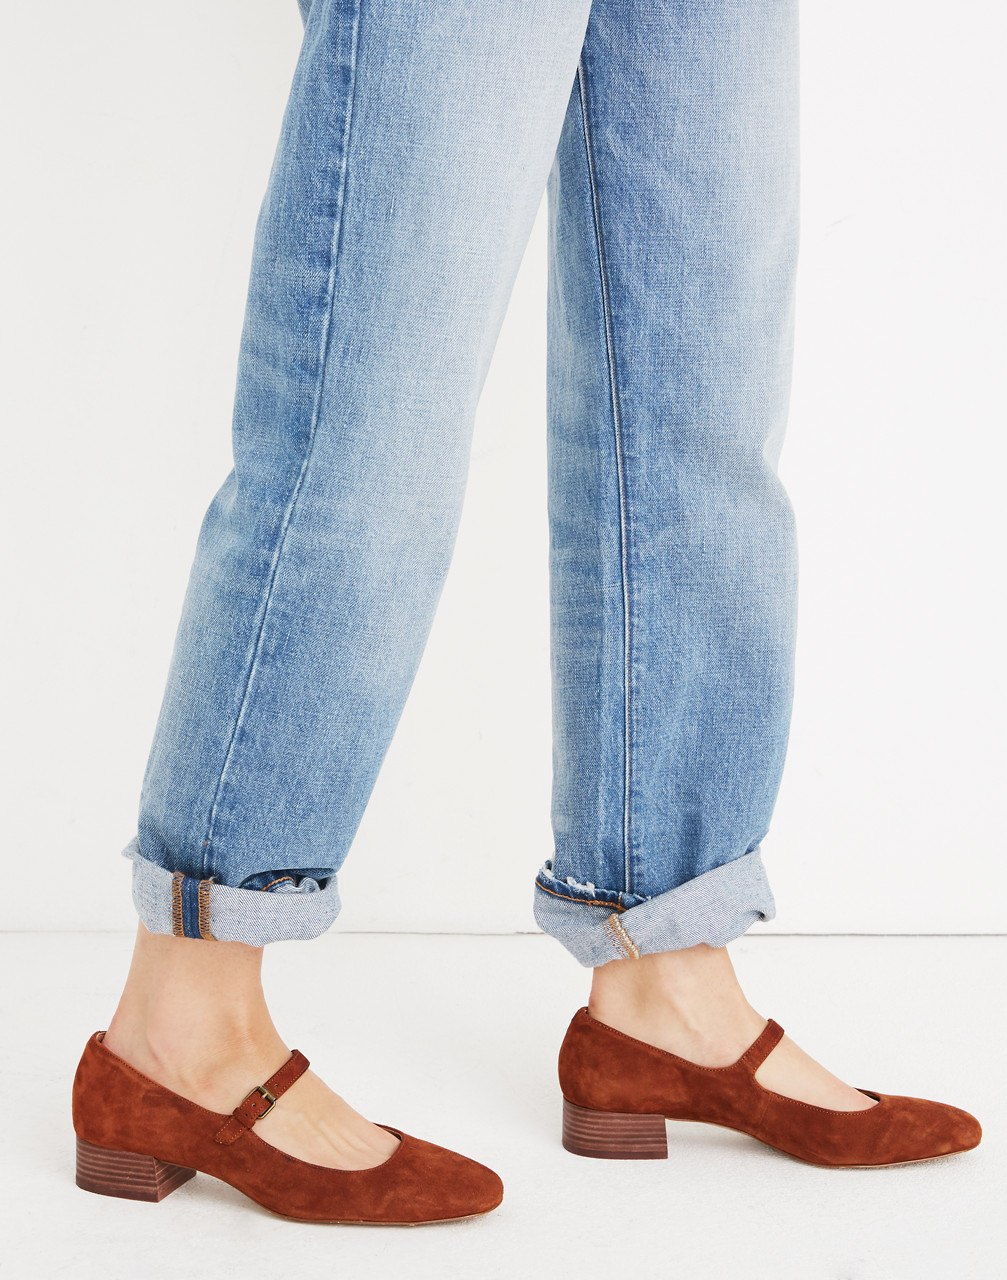 MADEWELL / THE DELILAH MARY JANES IN SUEDE $98 -